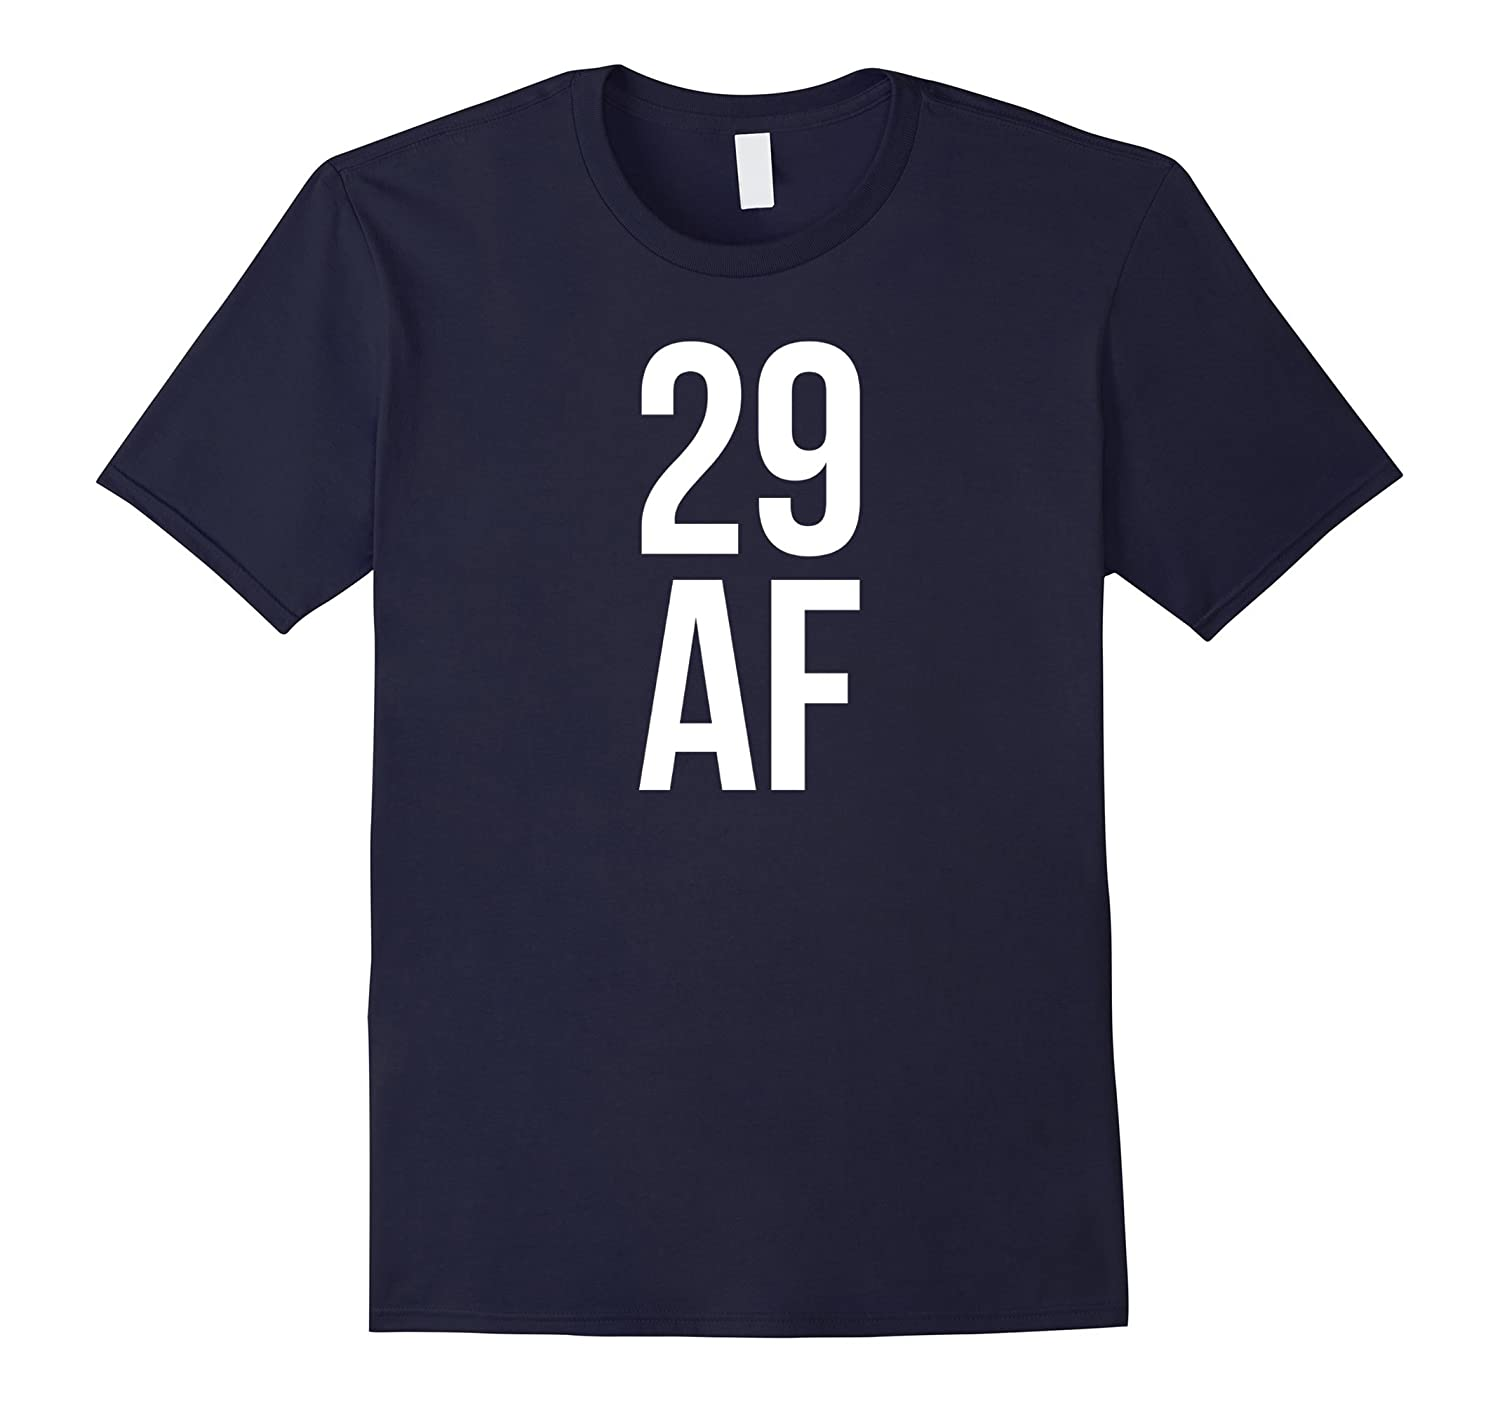 29 AF Tshirt 29th Birthday Shirt Tee Top Mens Womens-TH